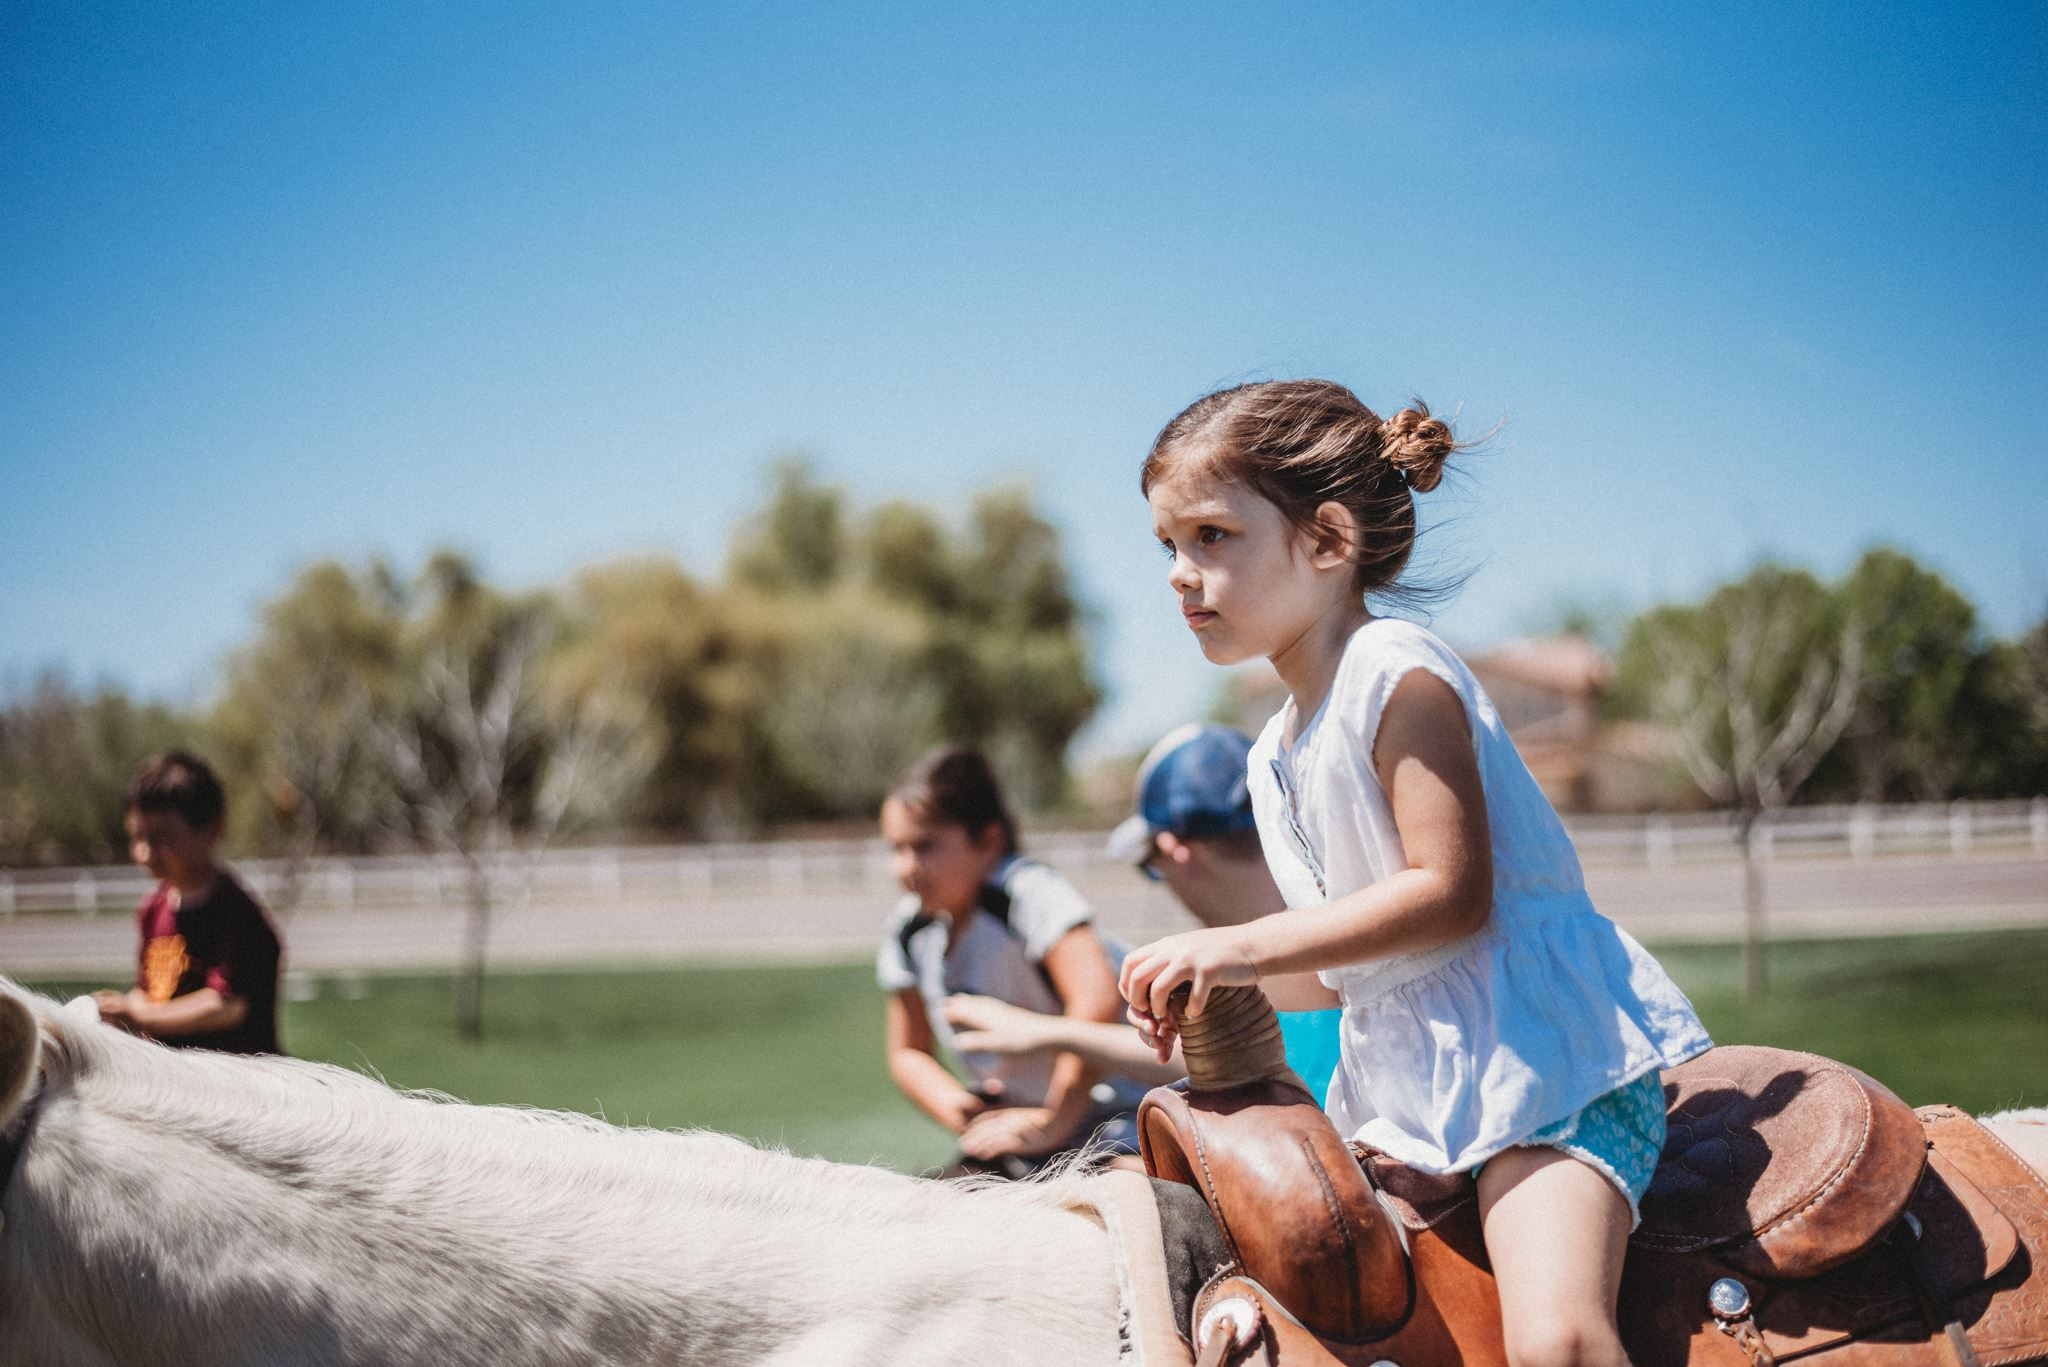 Young Girl Determinedly Riding a White Pony